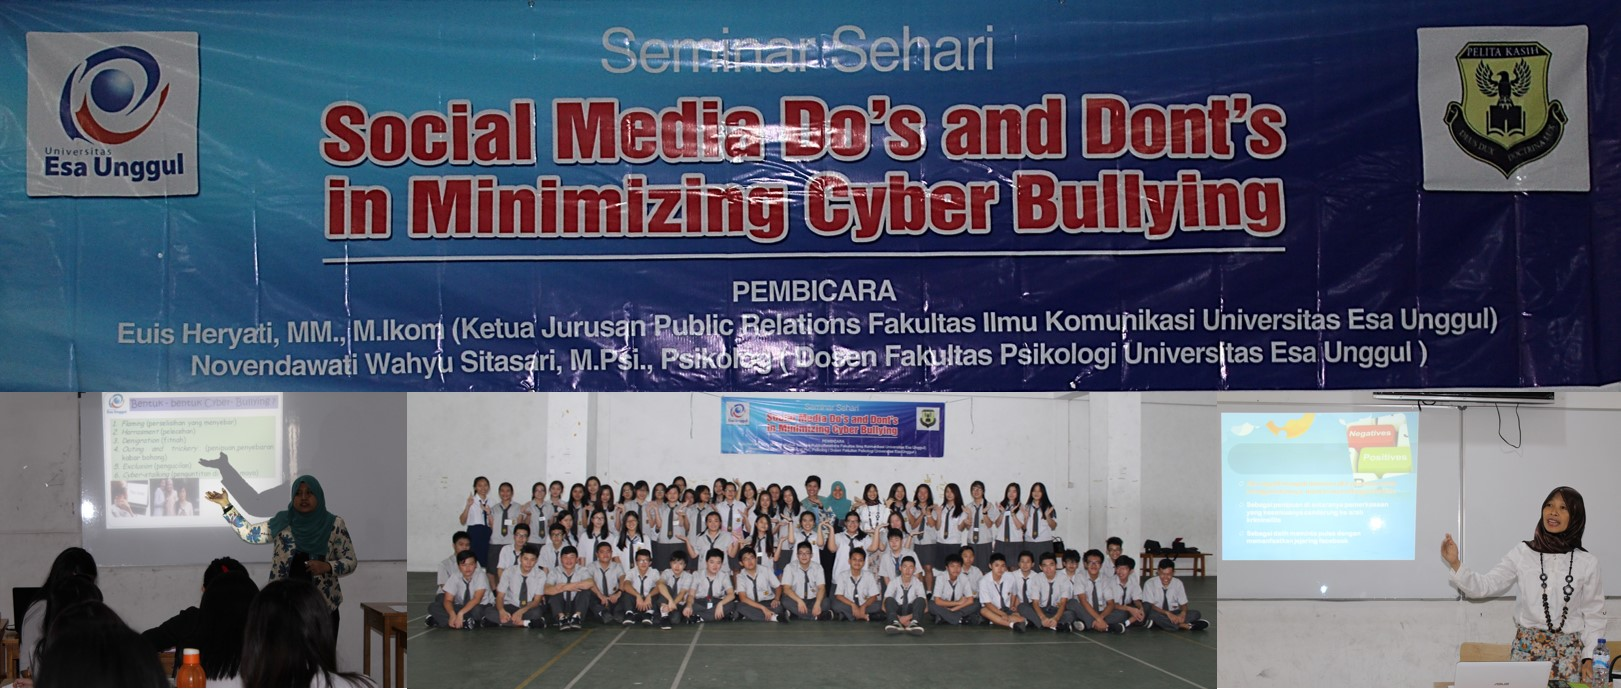 "Universitas Esa Unggul Gelar Seminar ""Social Media Do's and Dont's in Minimizing Cyber Bullying"" di SMA Pelita Kasih, Jakarta"